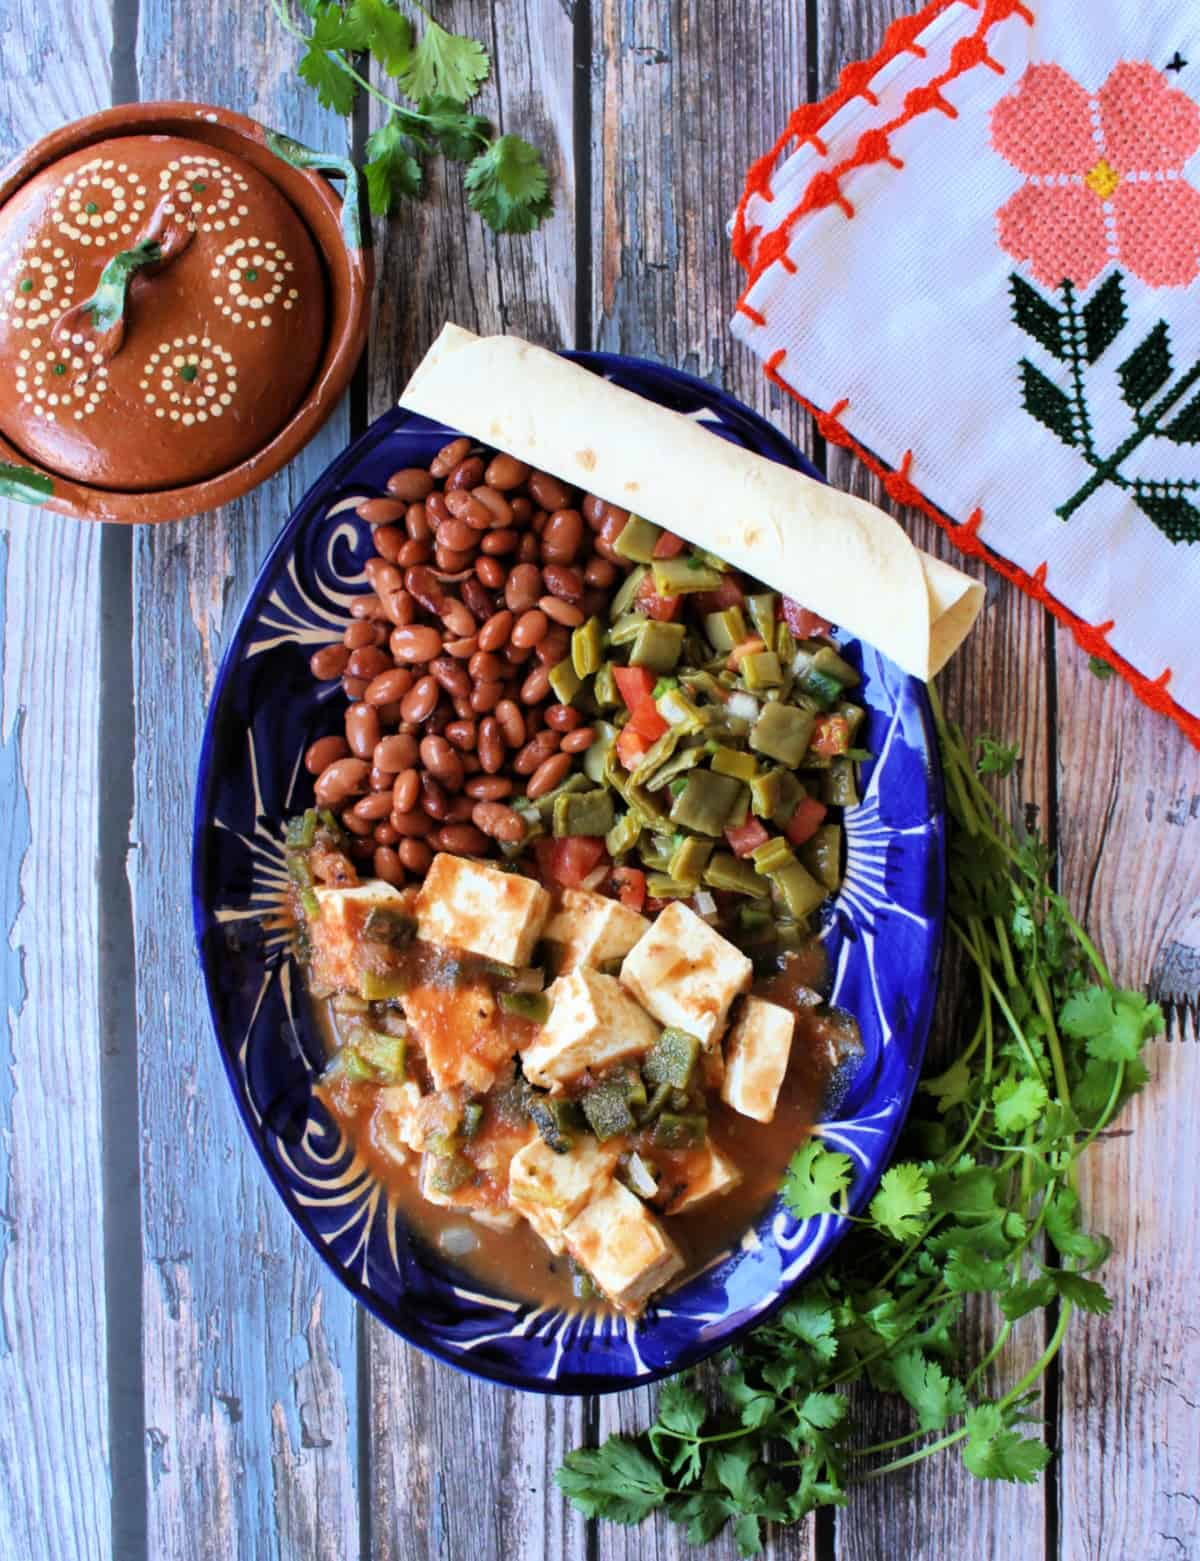 Queso con Chile served in a decorative blue plate next to pinto beans and a cactus salad.